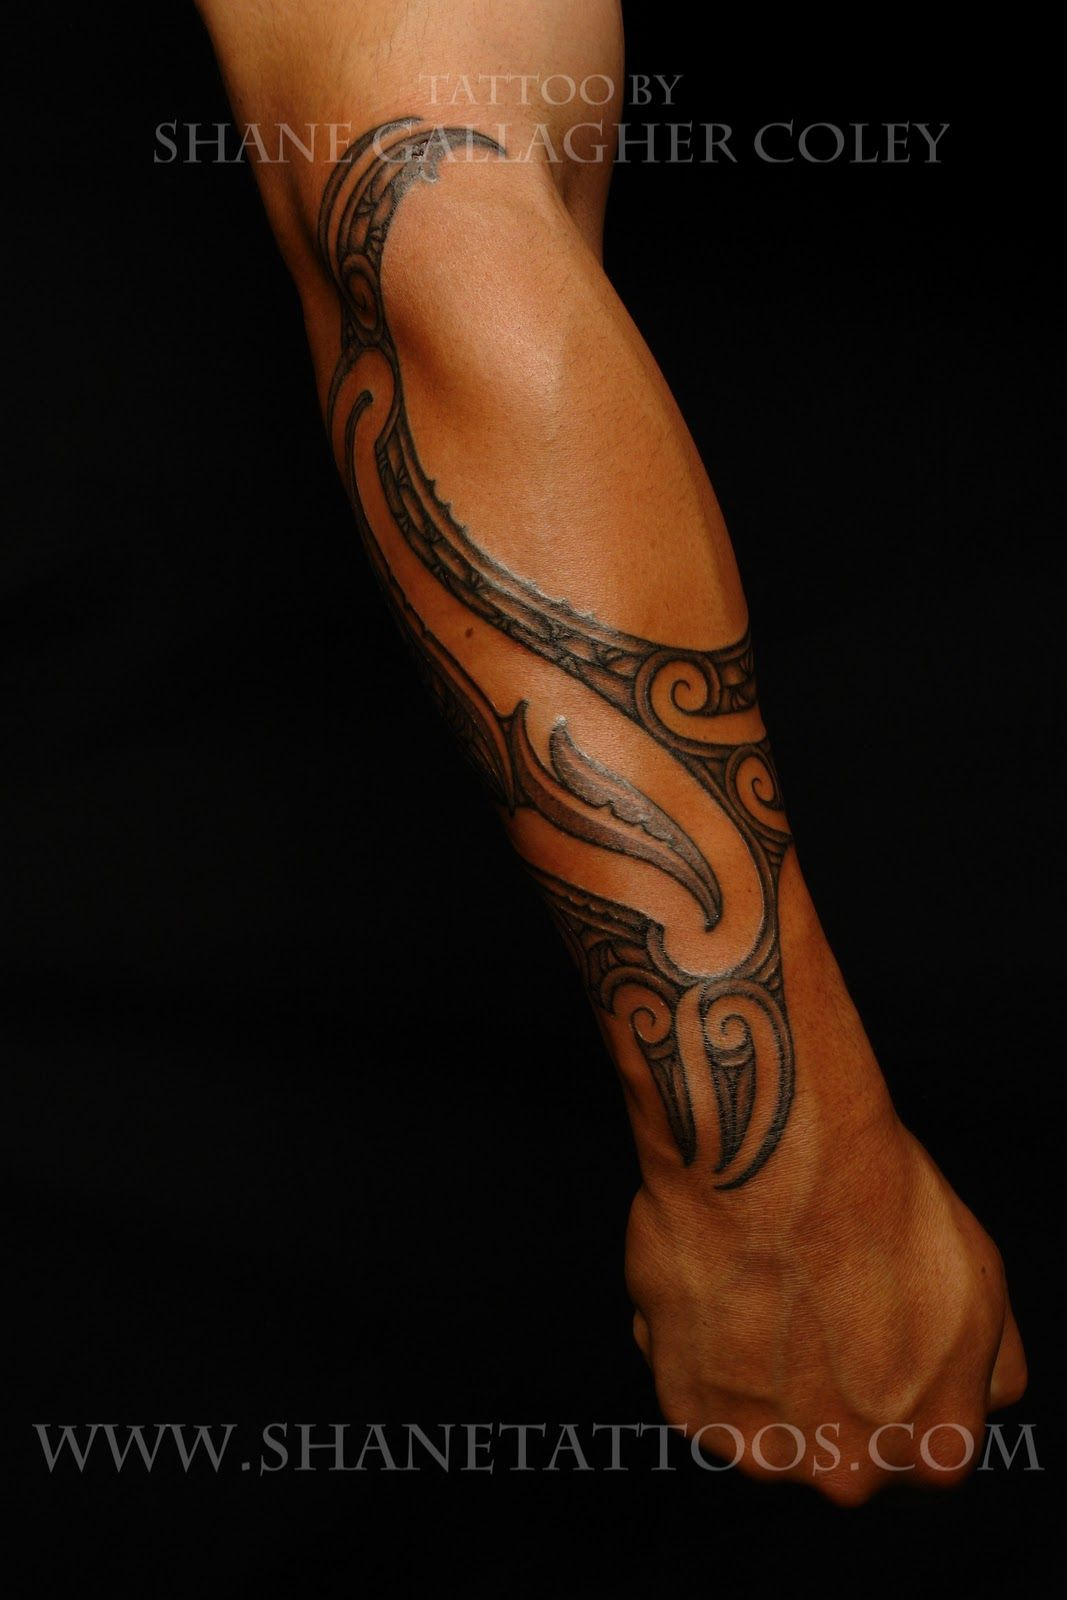 Maori Forearm Tattoo Designs: Email This BlogThis! Share To